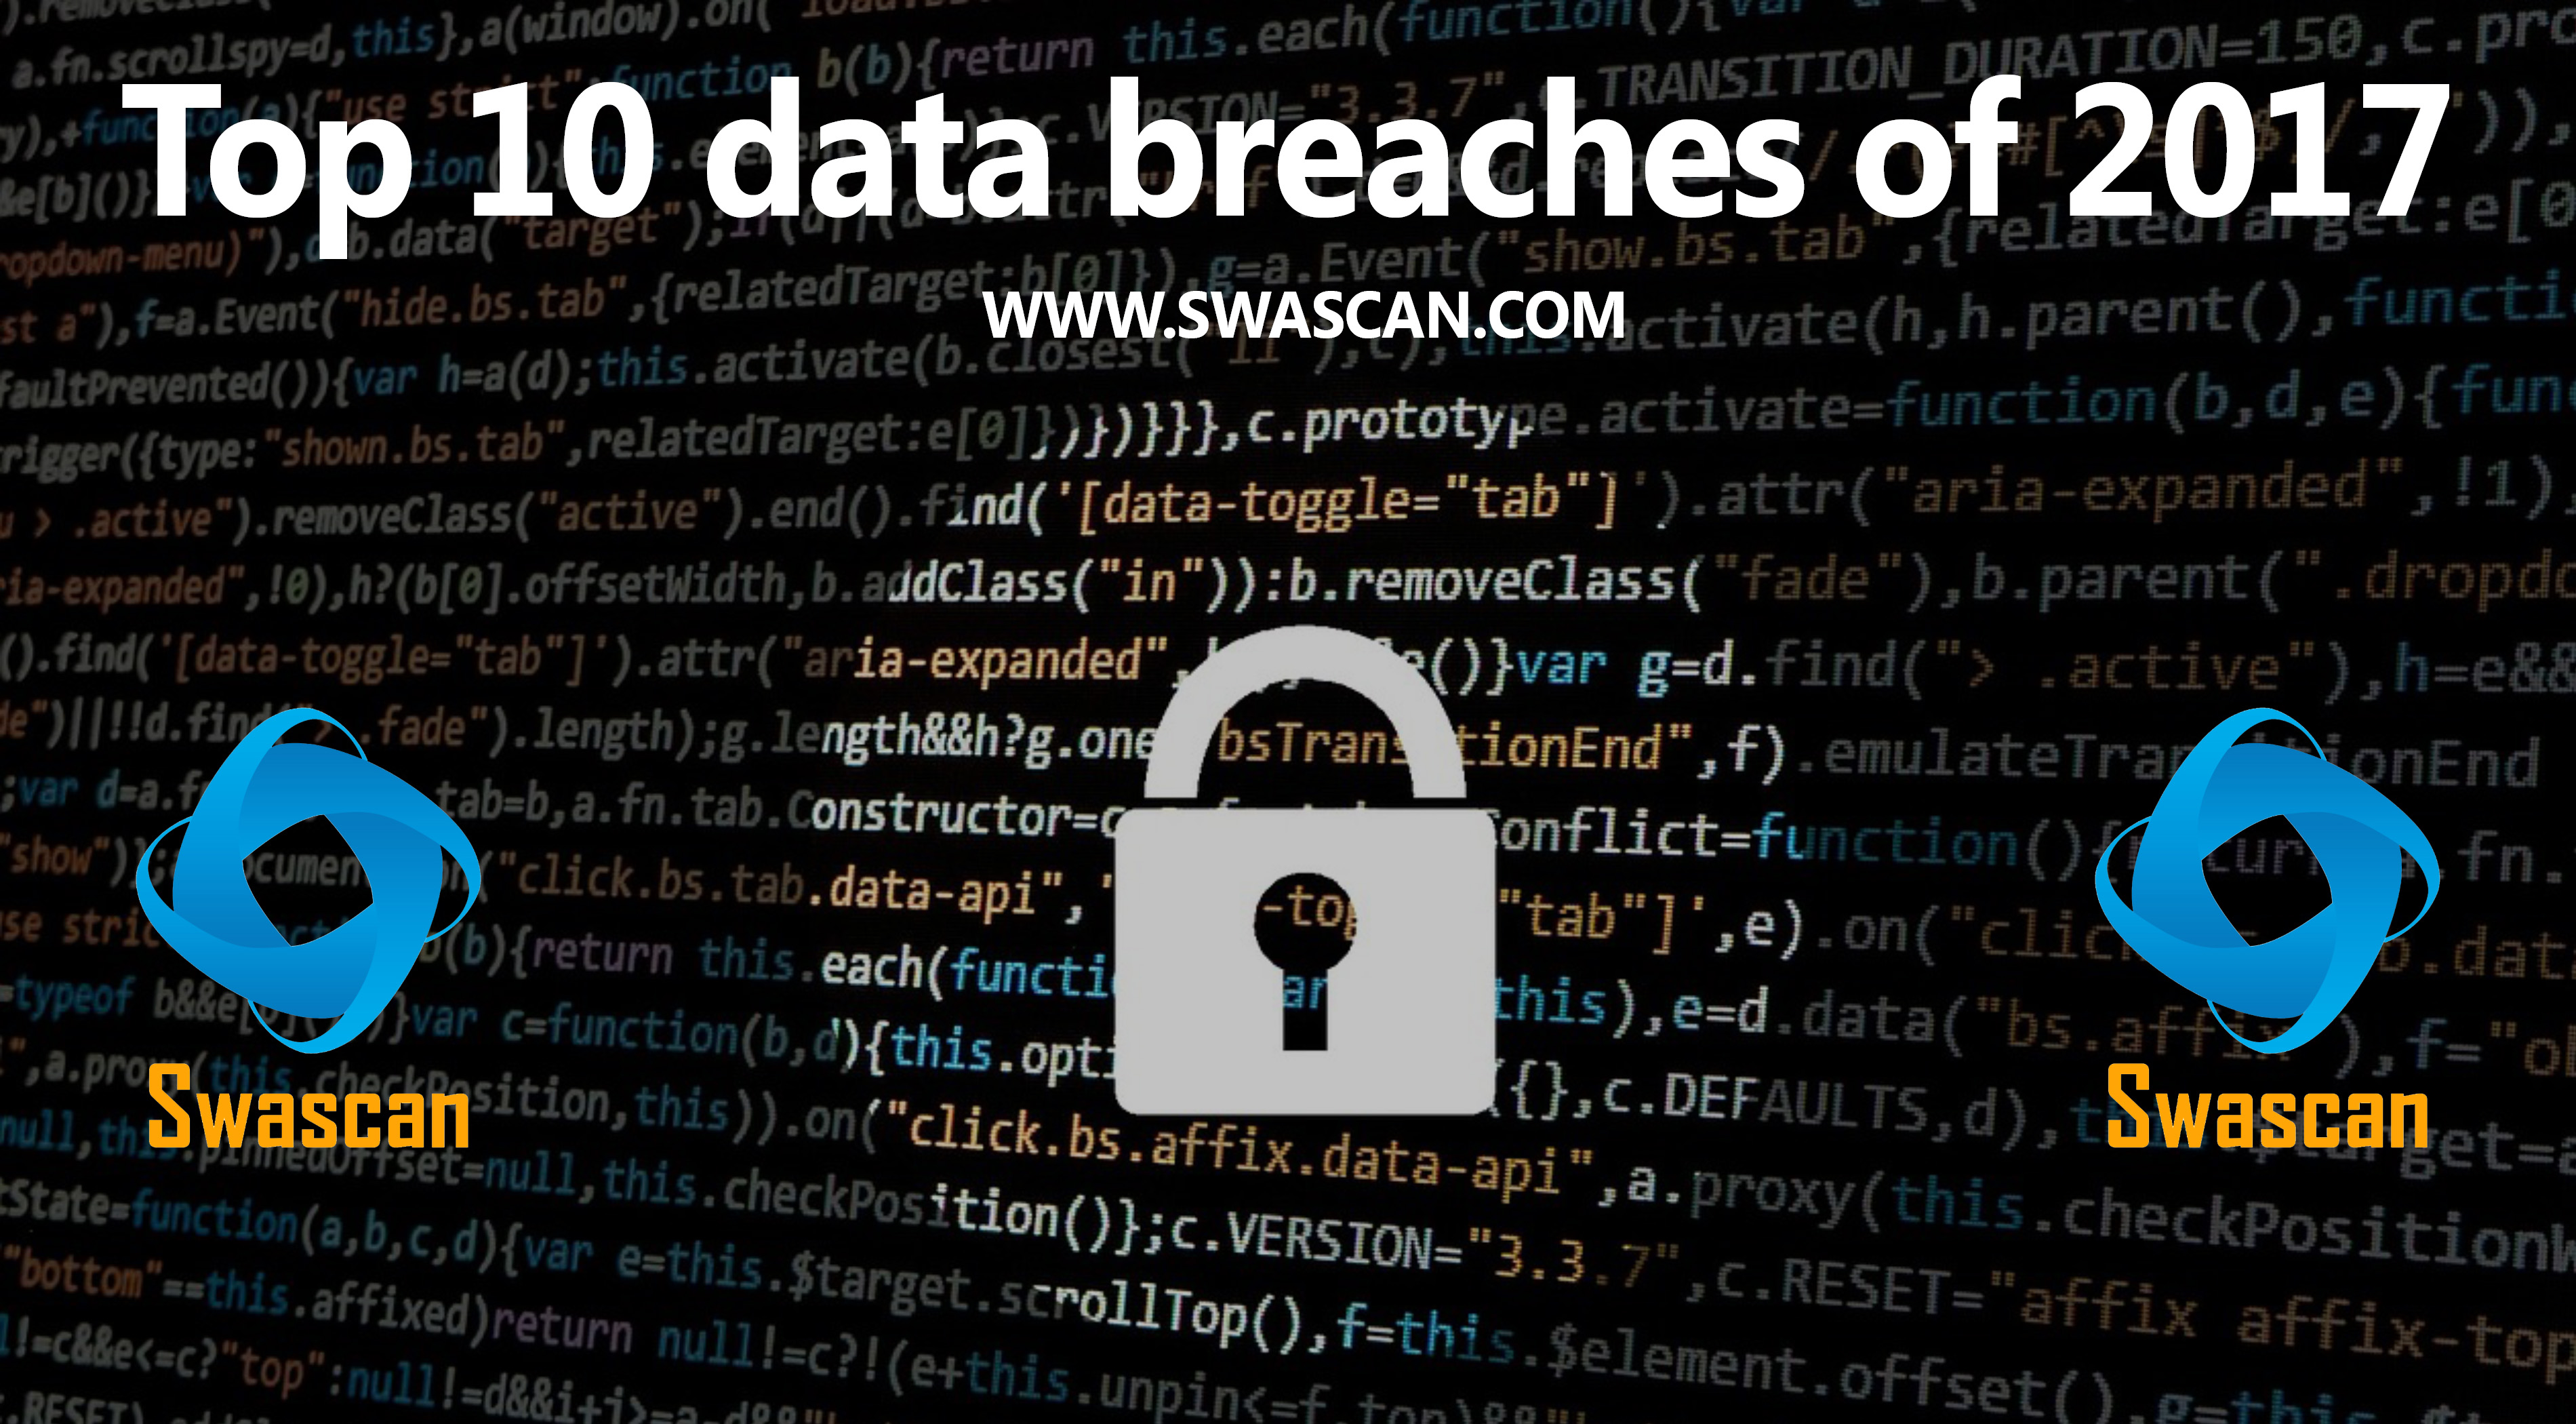 Data breaches top 10